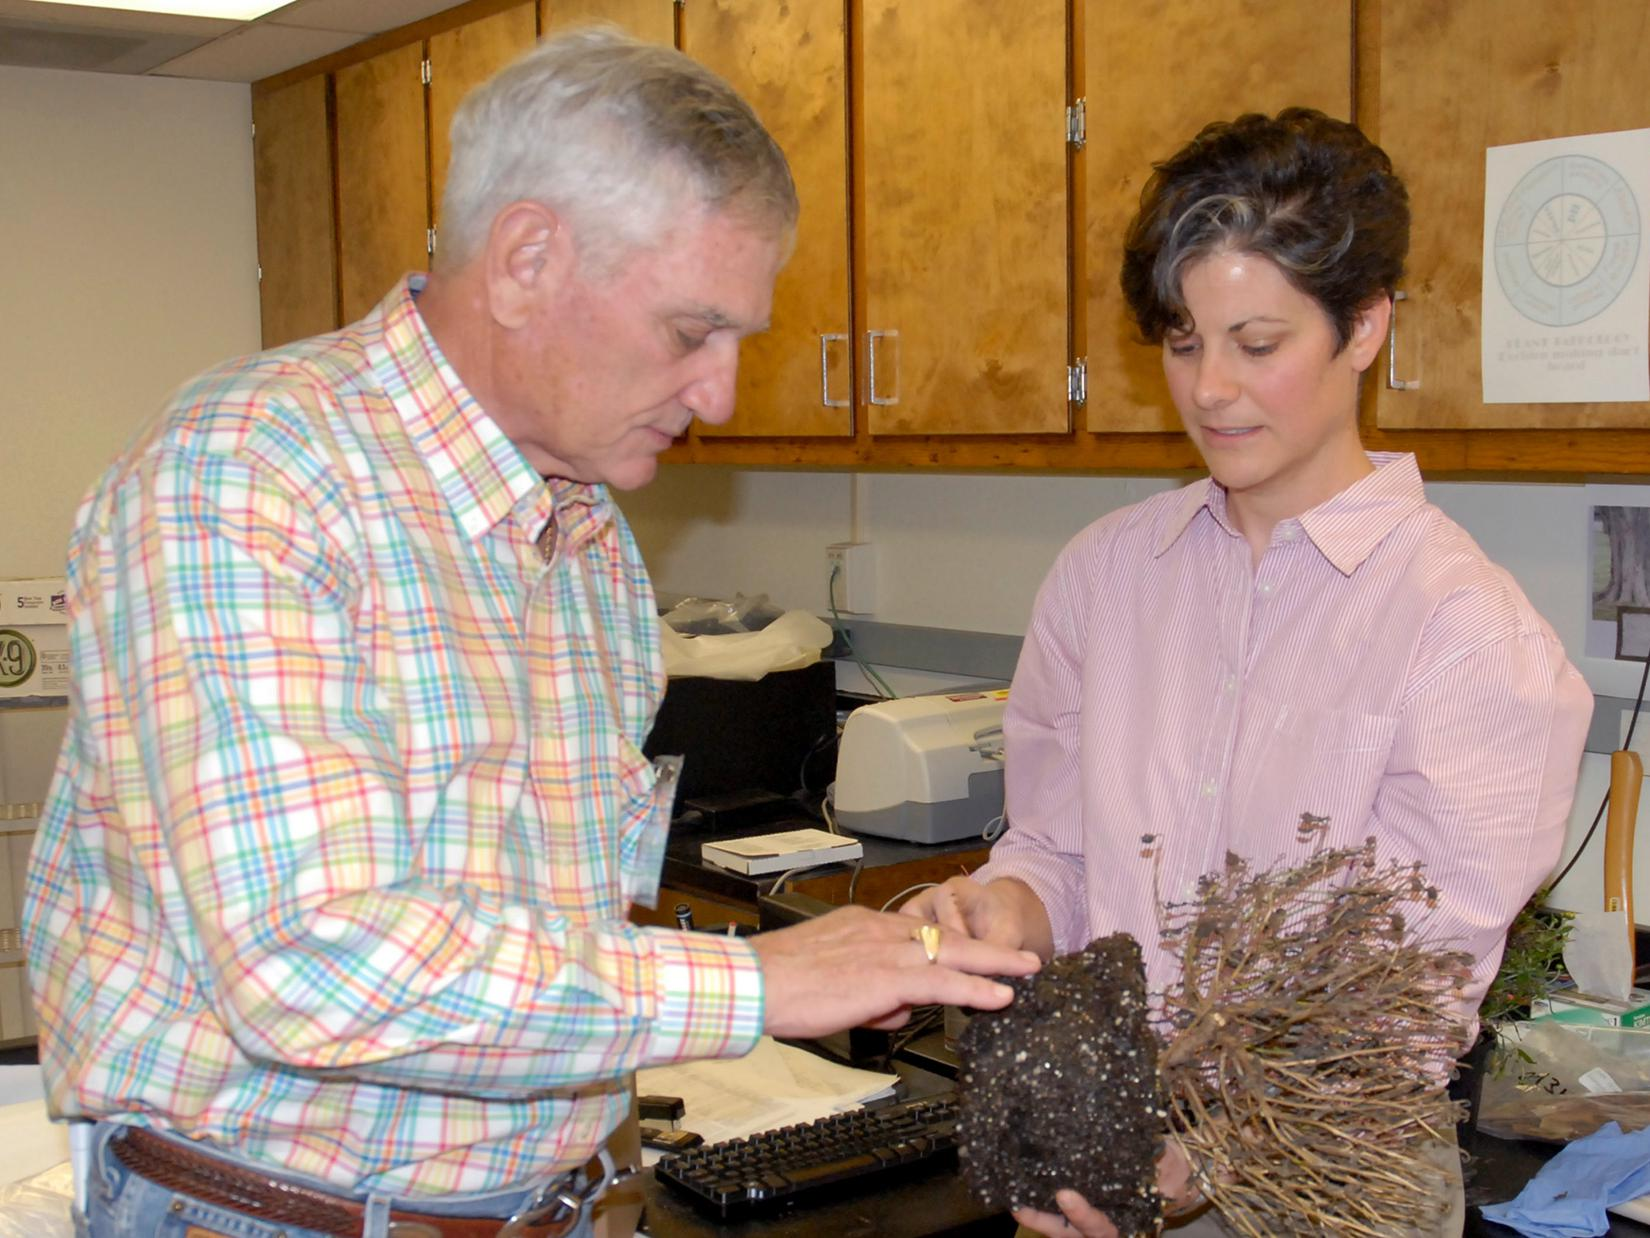 Lynn McMahan of Vancleave, past president of the Mississippi Master Gardeners, learns about plant diseases from Clarissa Balbalian, manager of the Mississippi State University Extension Service's plant diagnostic lab, during campus tours in 2013. (File photo by MSU Ag Communications/Linda Breazeale)